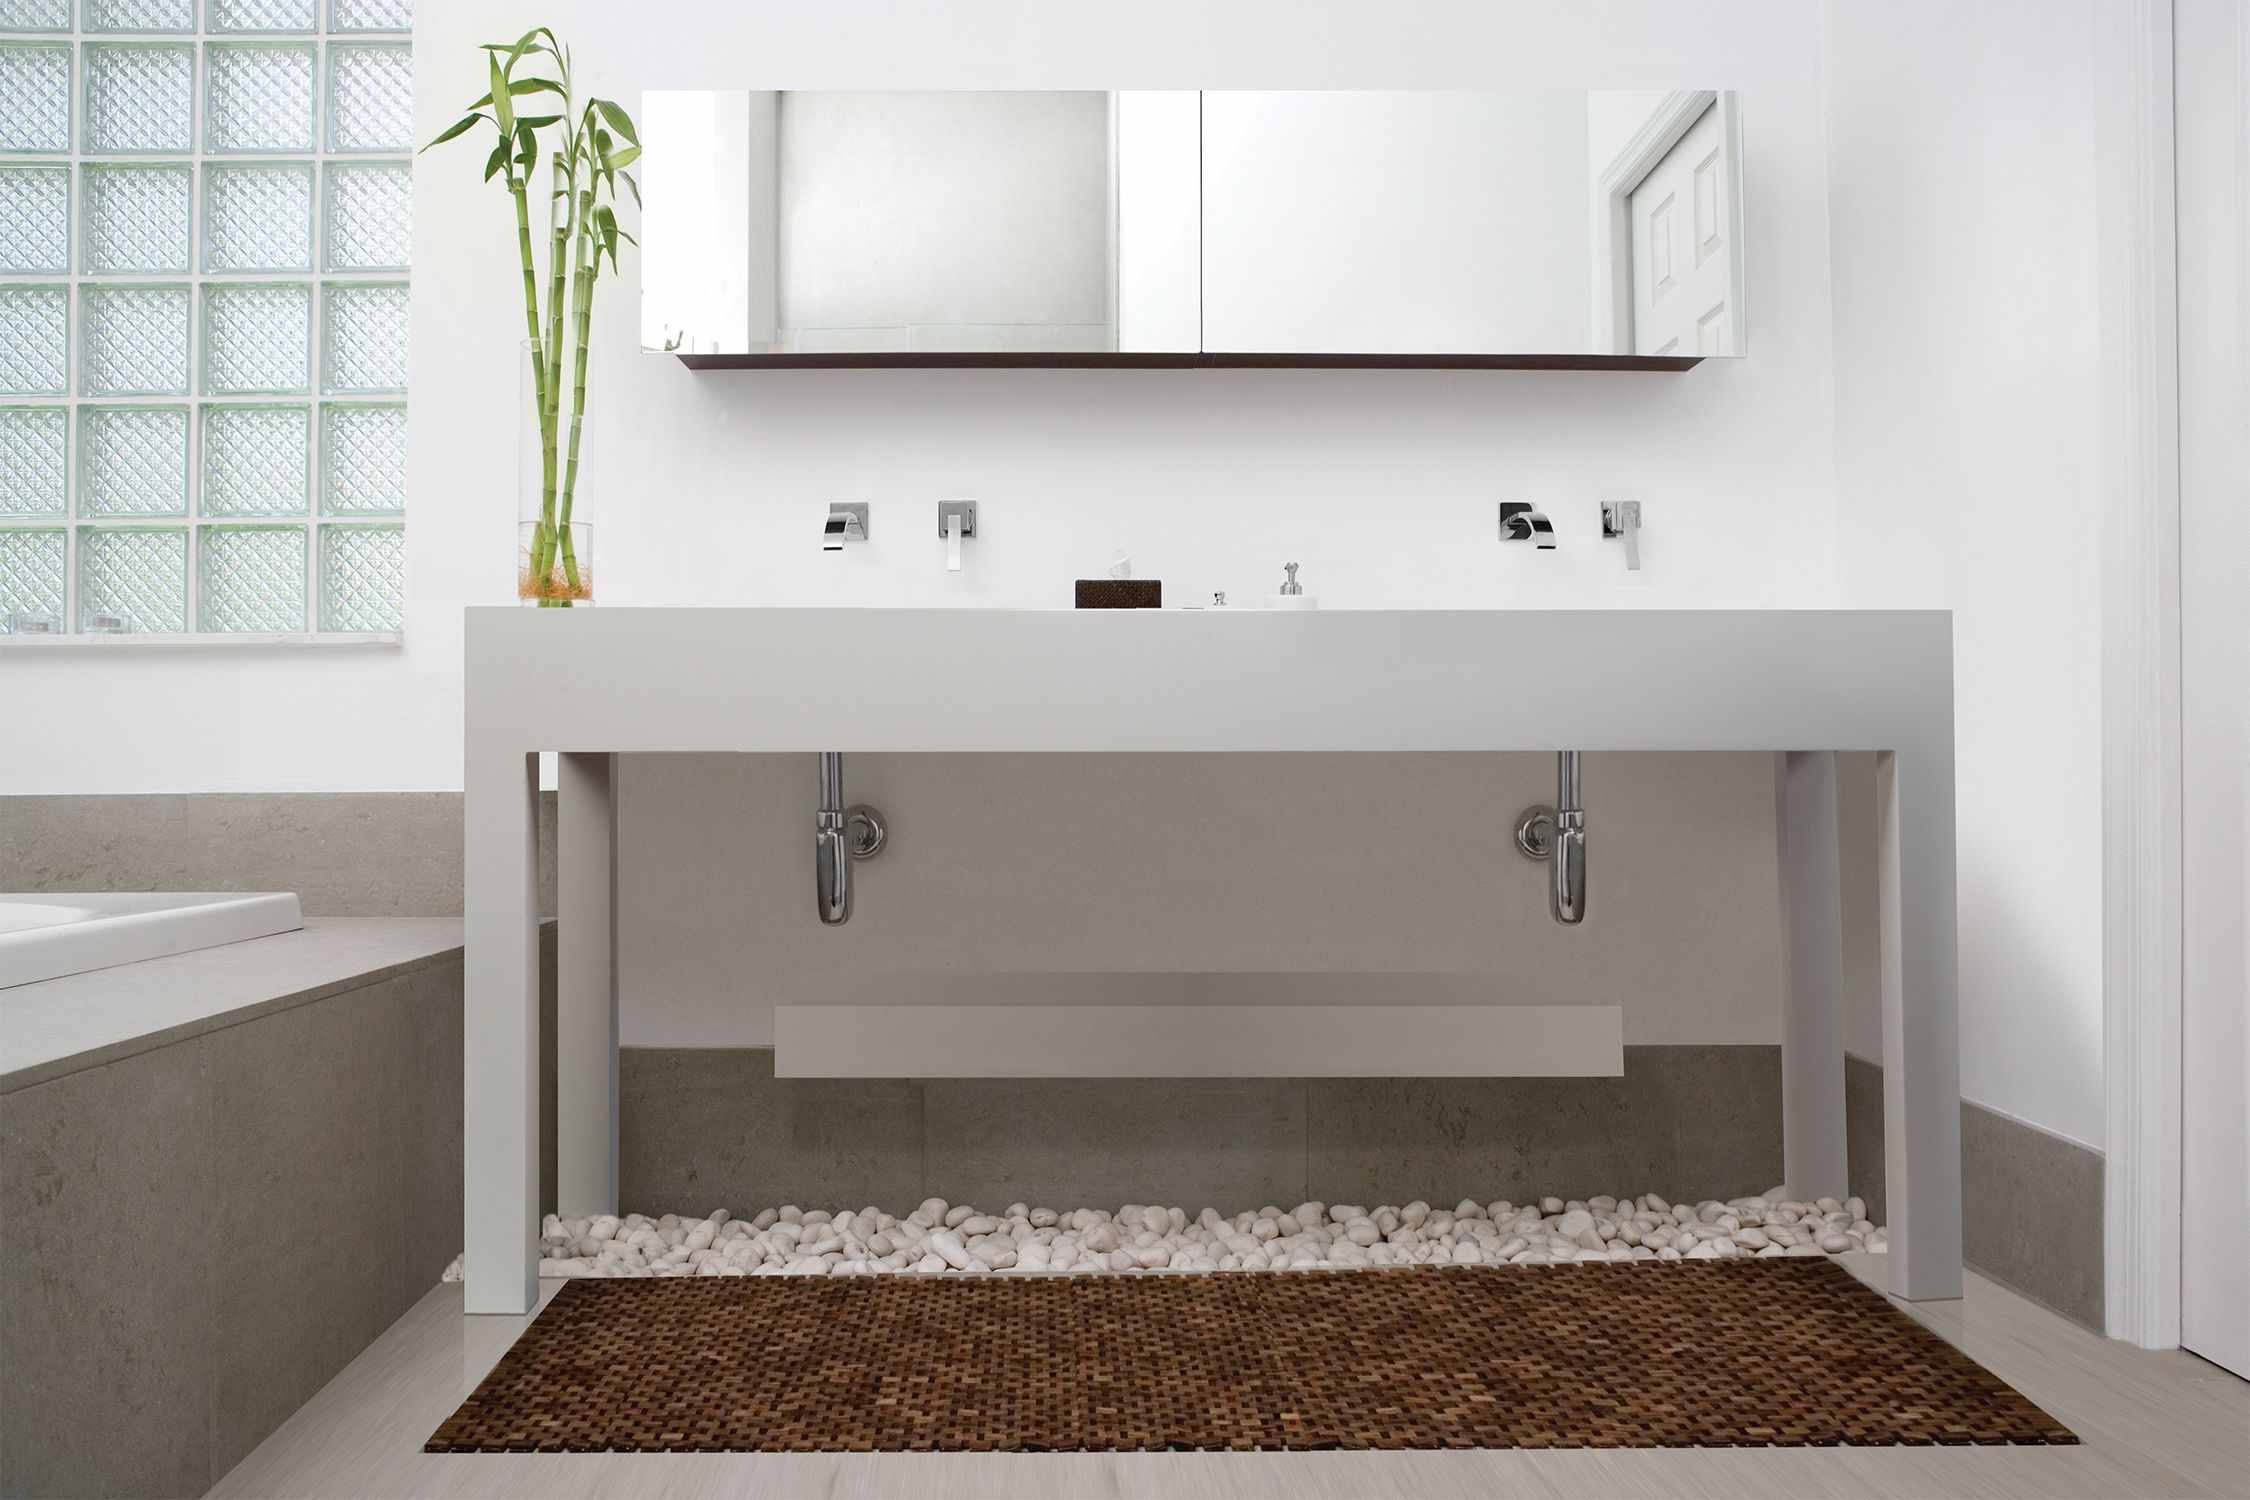 Mti Parsons Vanity Sink With Floating Shelf Love This Look Our Bathtubs In Dream Bathrooms